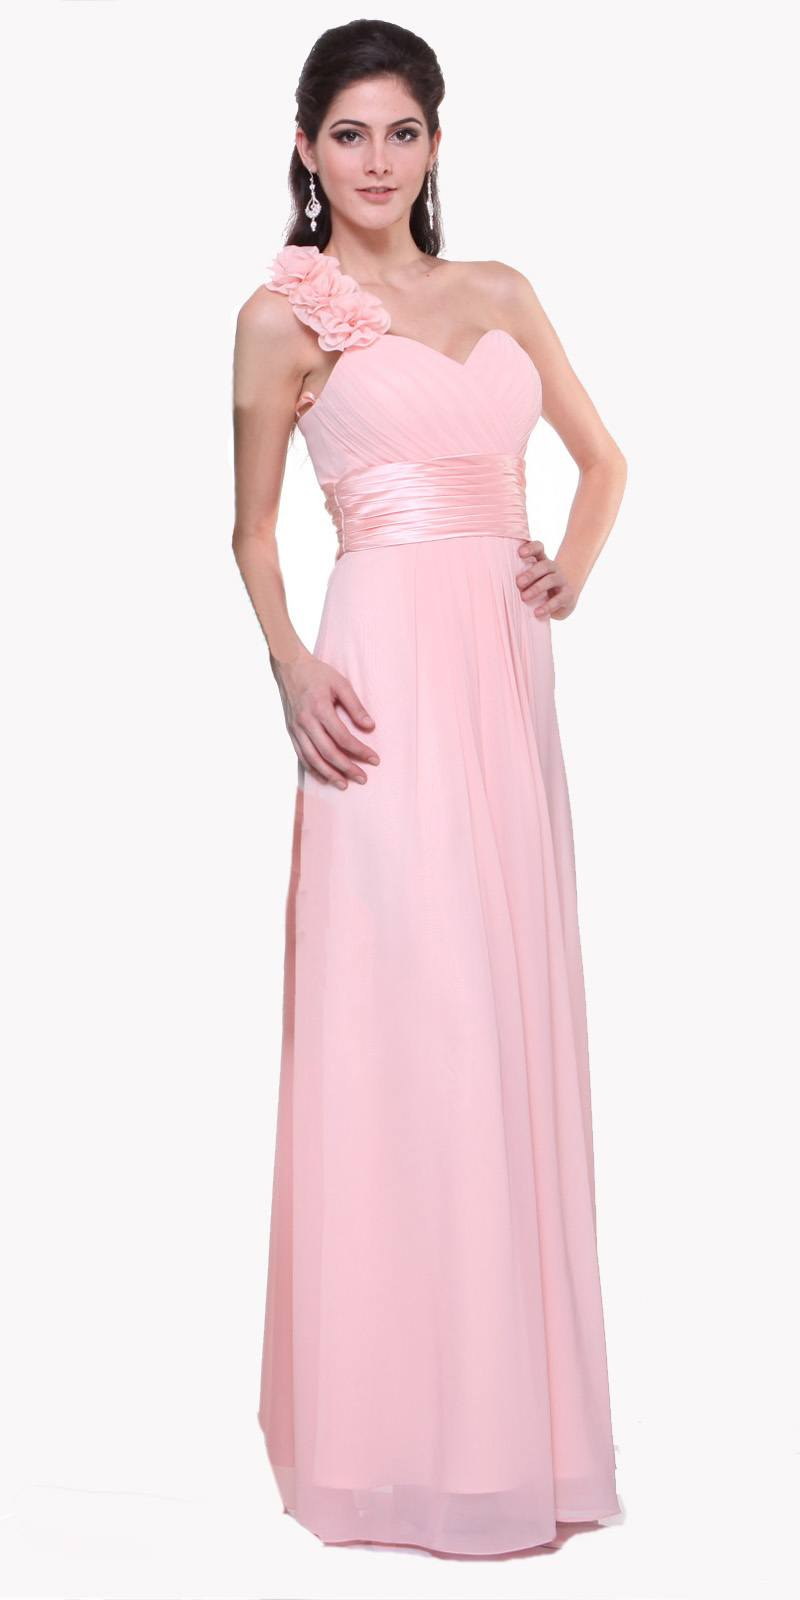 Full length one shoulder coral chiffon bridesmaid dress a line full length one shoulder blush chiffon bridesmaid dress a line ombrellifo Image collections